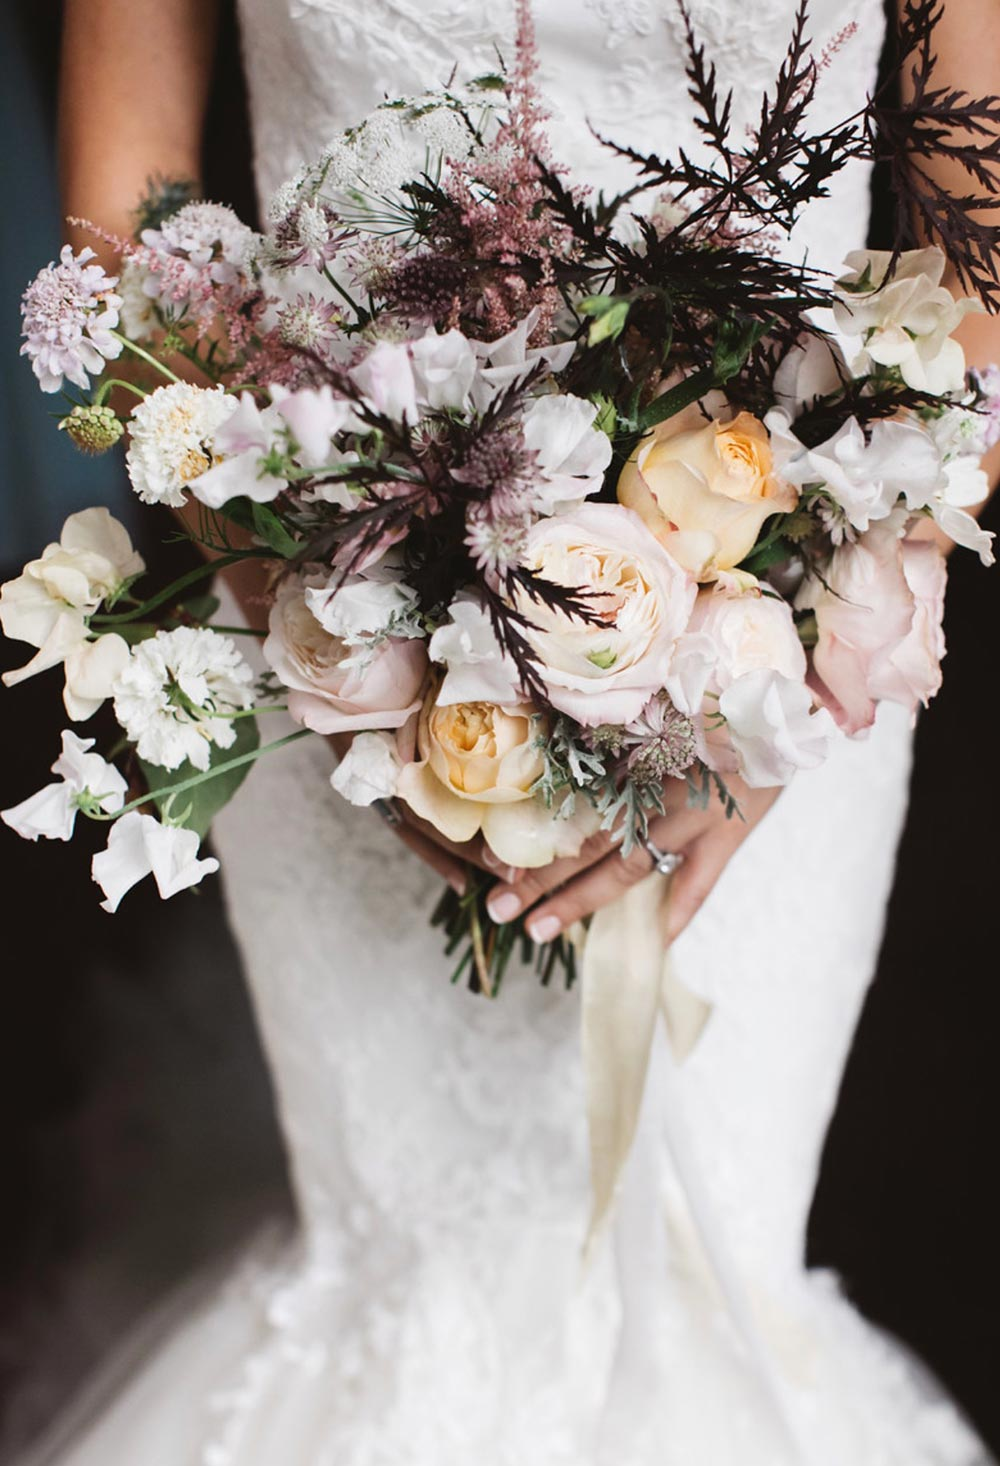 18-wilde-thyme-bridal-bouquet-wedding-fowers-garden-roses--silk-ribbon.jpg